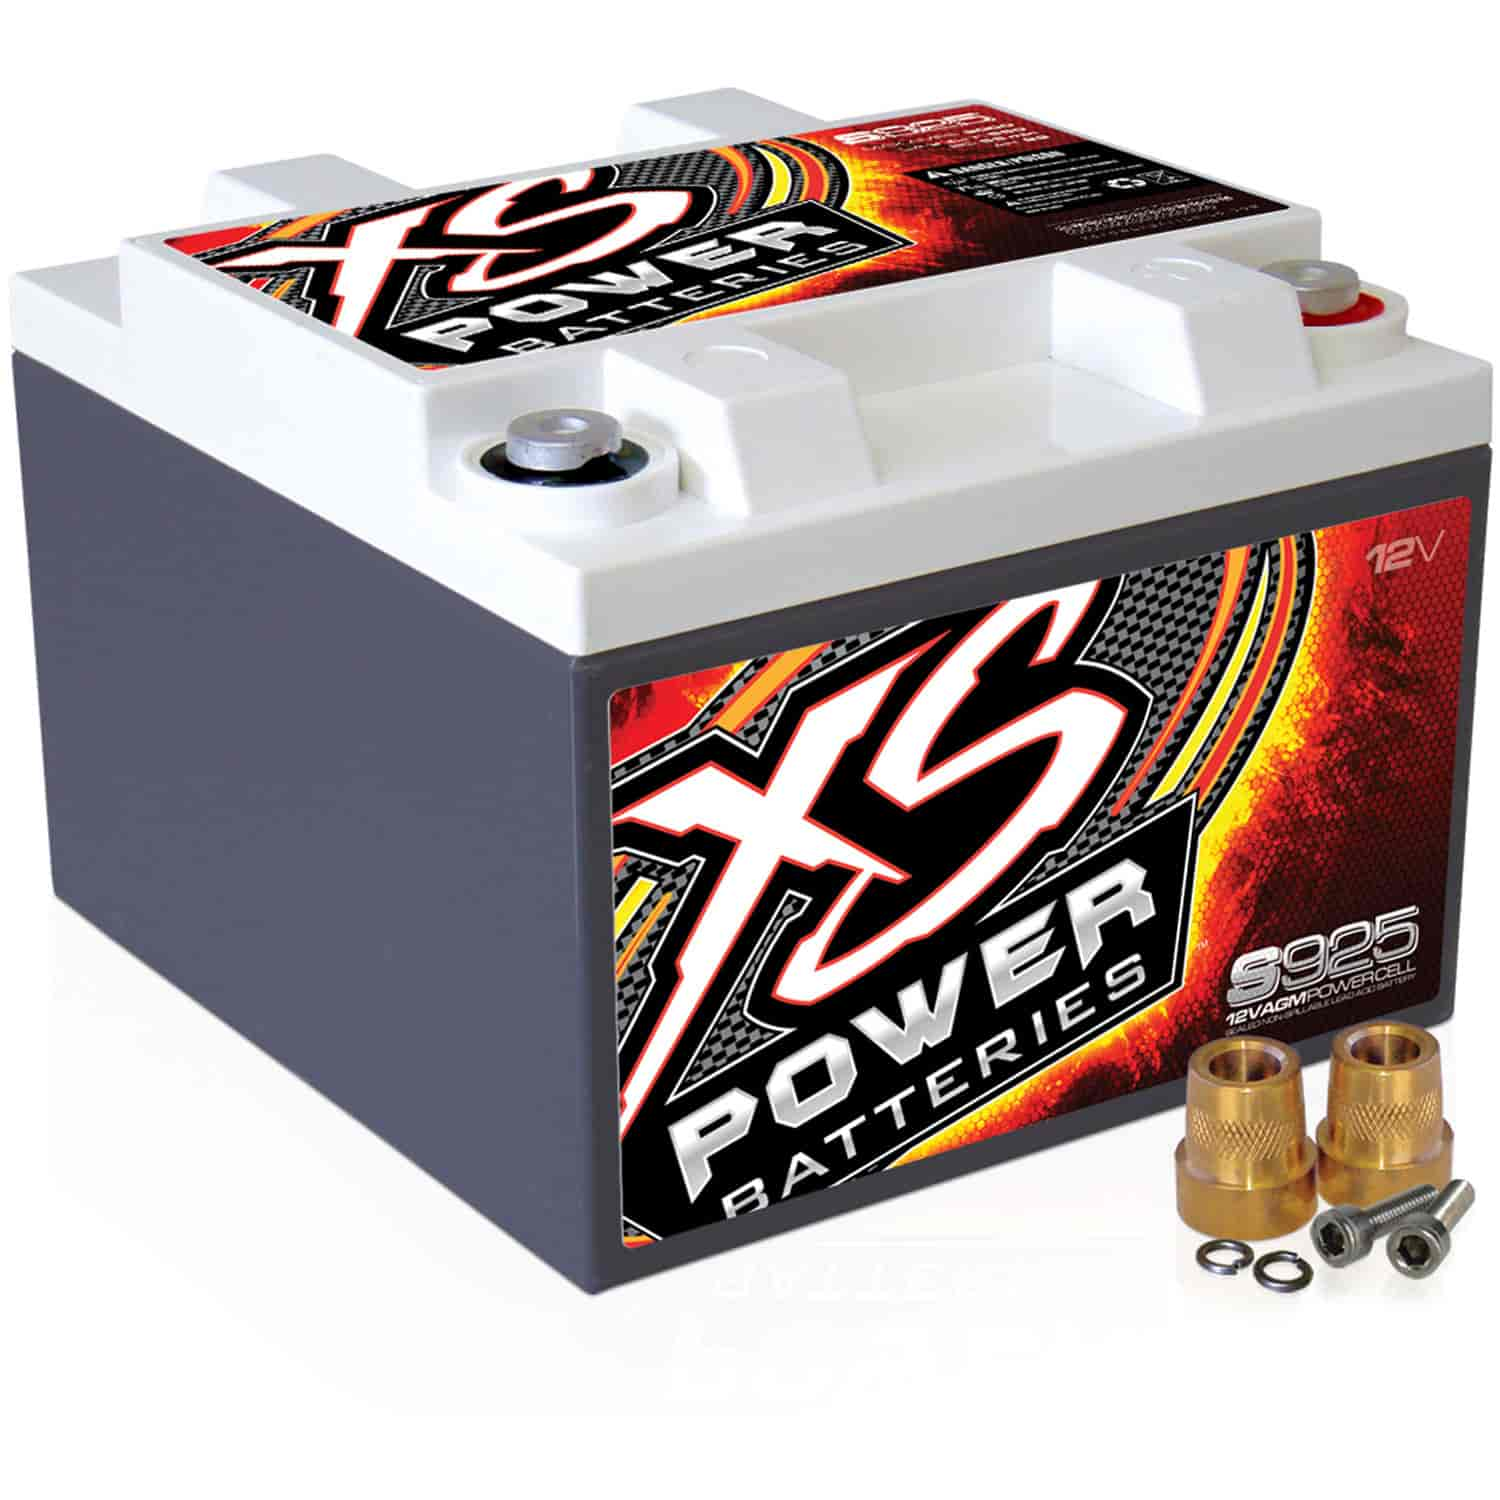 XS Power S925 - XS Power Batteries